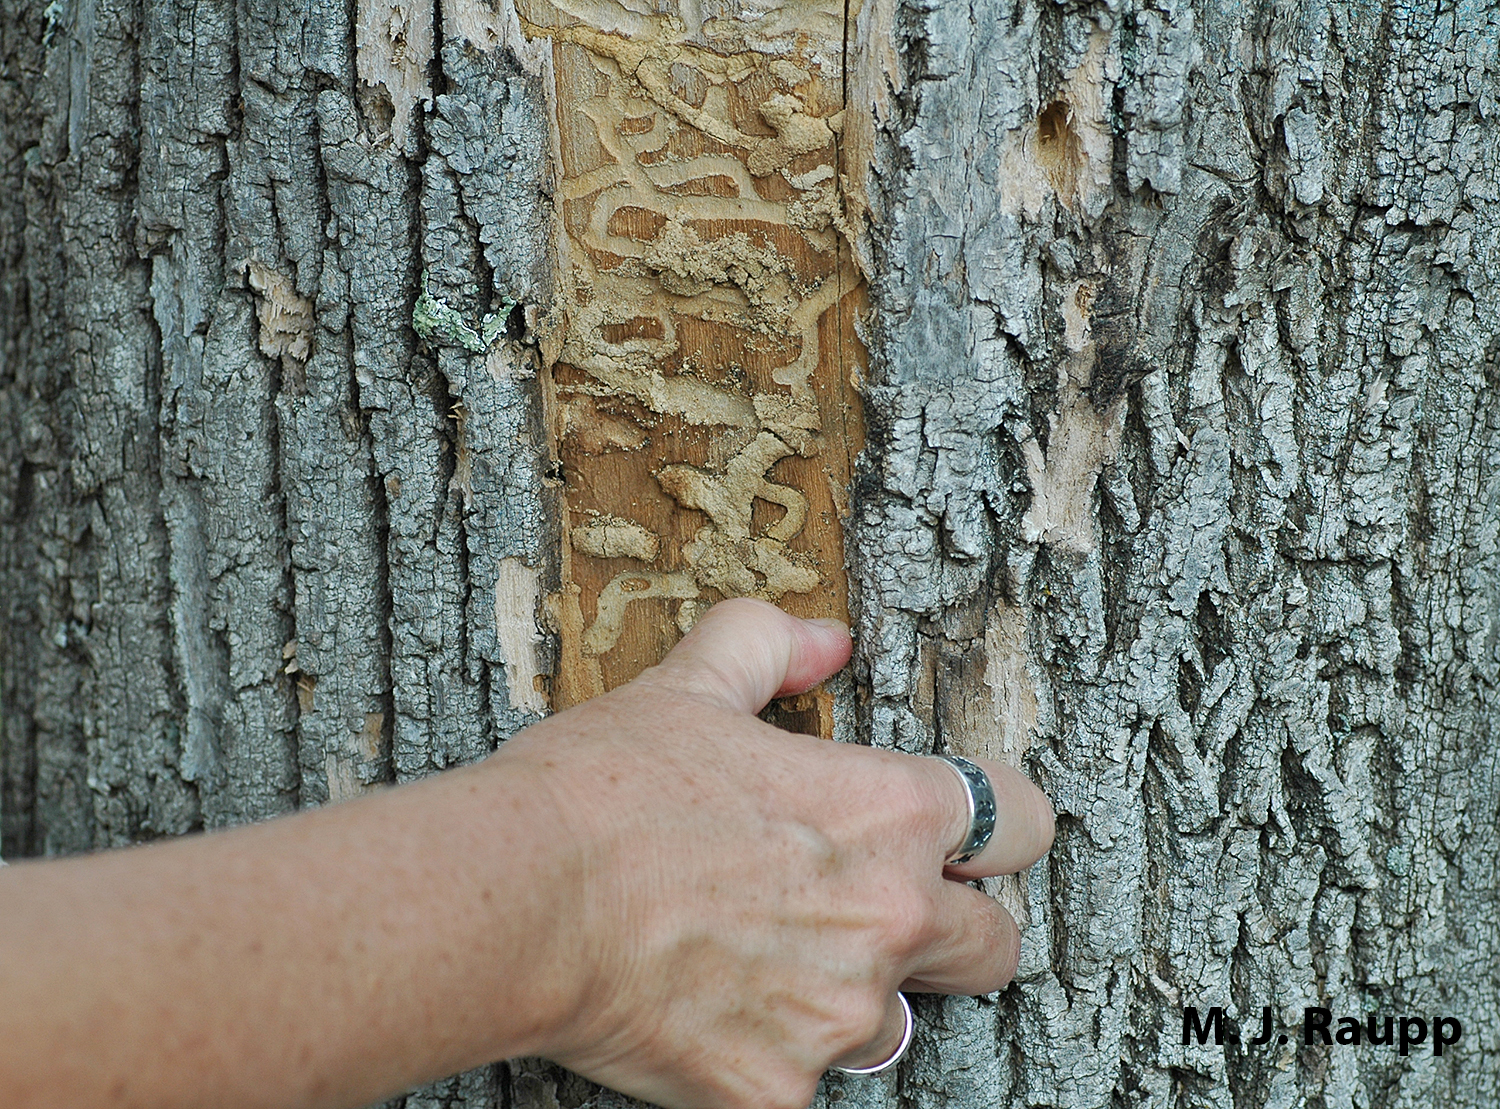 Emerald Ash Borer larvae create serpentine galleries beneath the bark. By consuming cambium, phloem, and sap wood, the borer effectively girdles the tree condemning it to death.